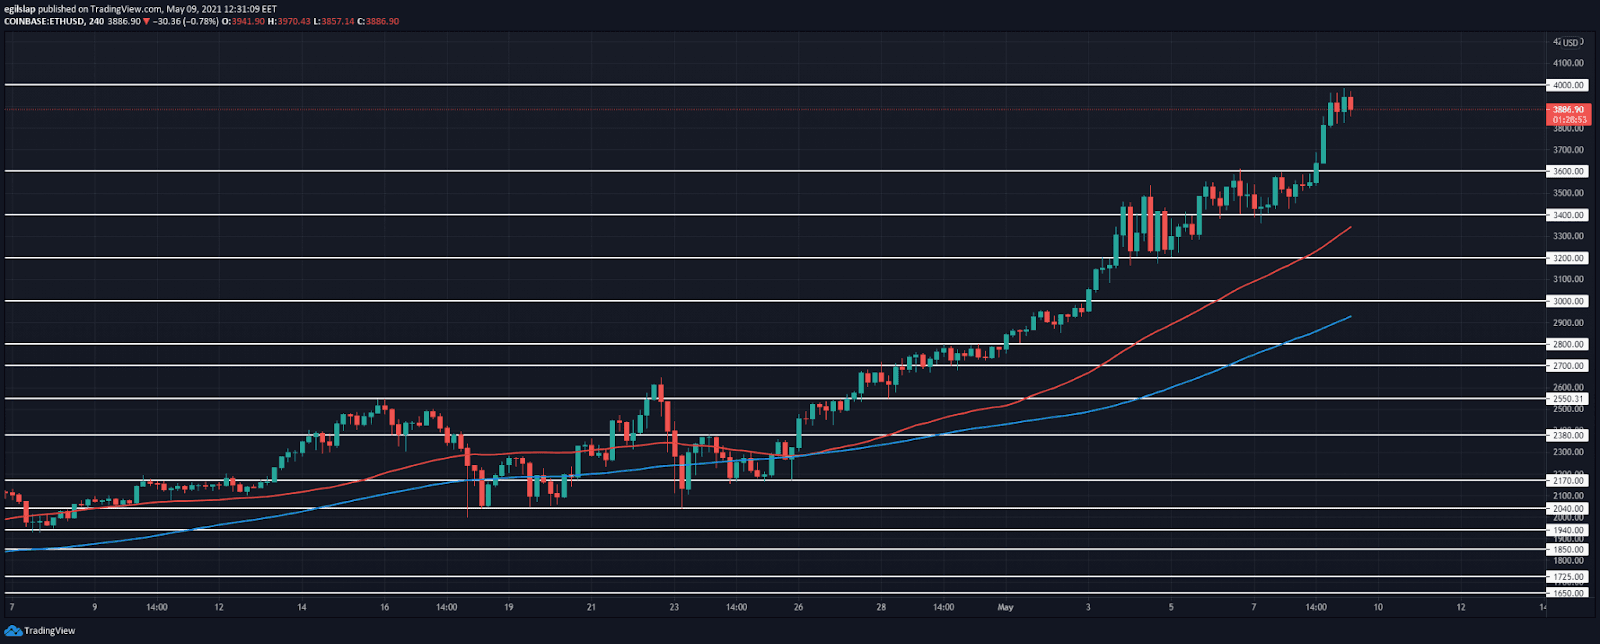 Ethereum price prediction: Ethereum reached $4,000, a retracement to follow?